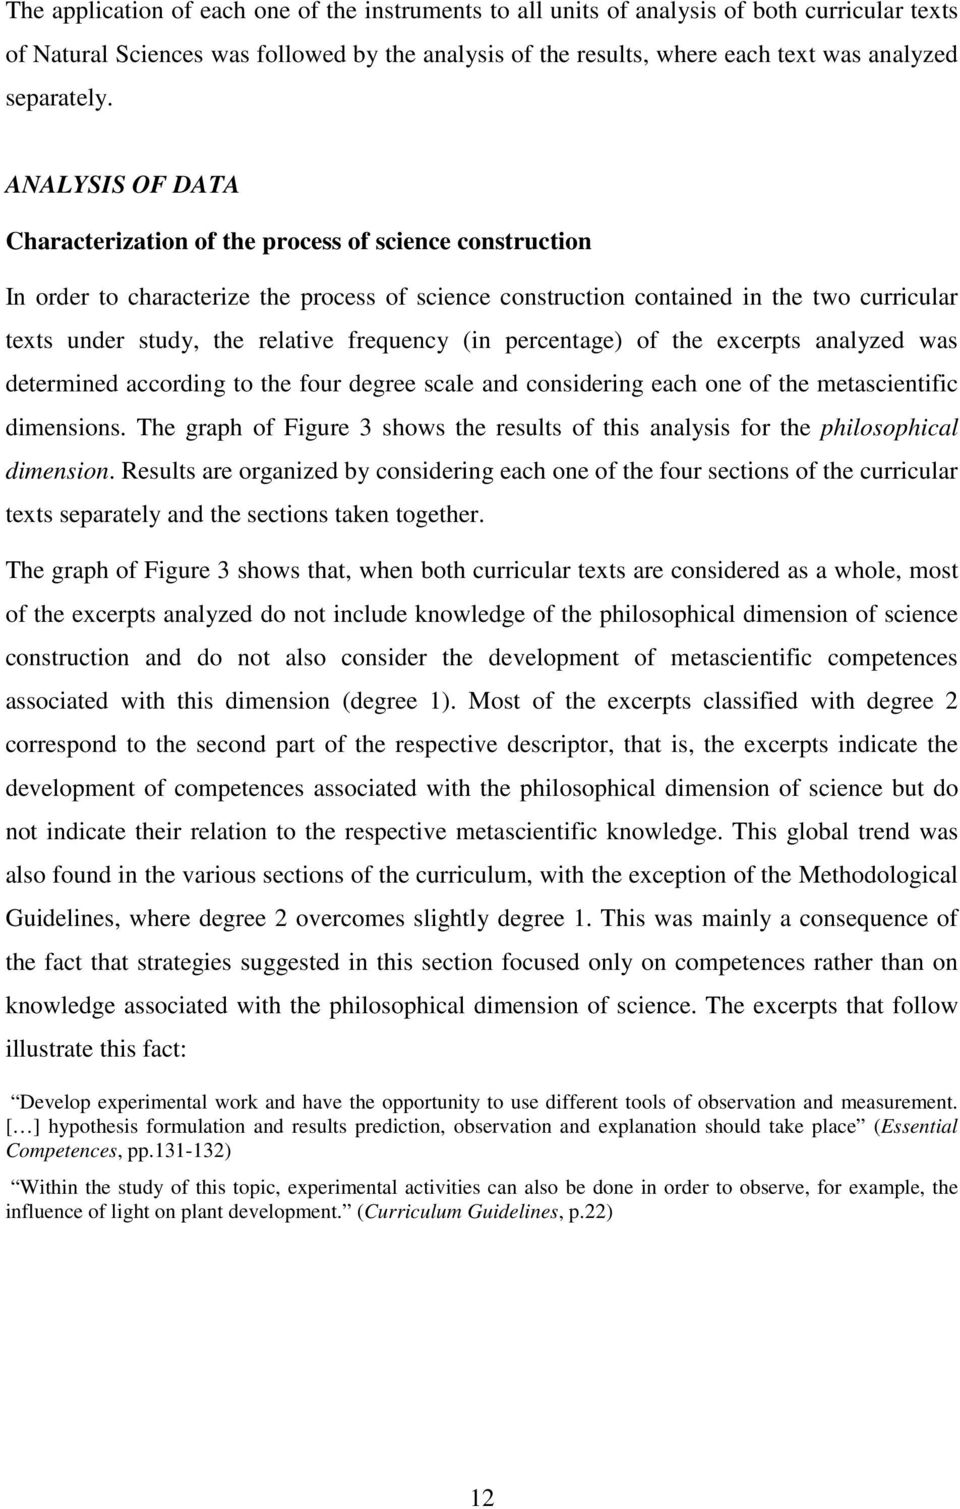 ANALYSIS OF DATA Characterization of the process of science construction In order to characterize the process of science construction contained in the two curricular texts under study, the relative